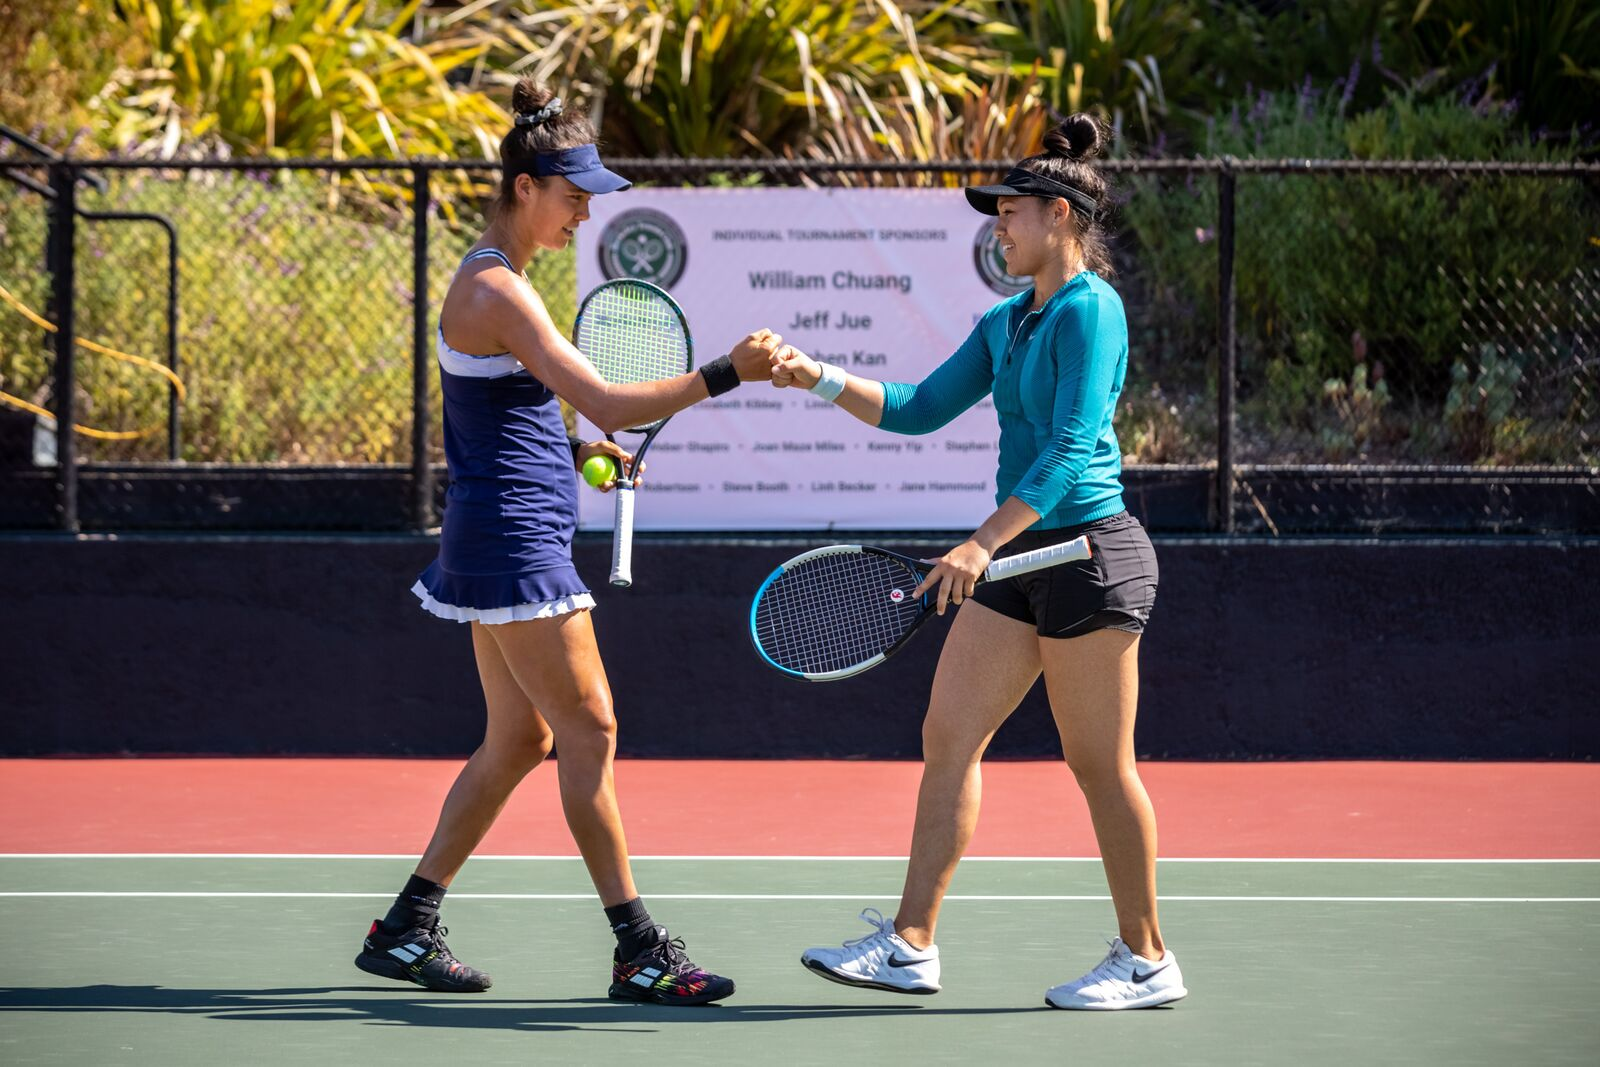 Sophie Chang and Angela Kulikov fist bump after a successful play at the Berkeley Tennis Club Women's Challenge tournament on October 3, 2021. Credit: Kelly Sullivan